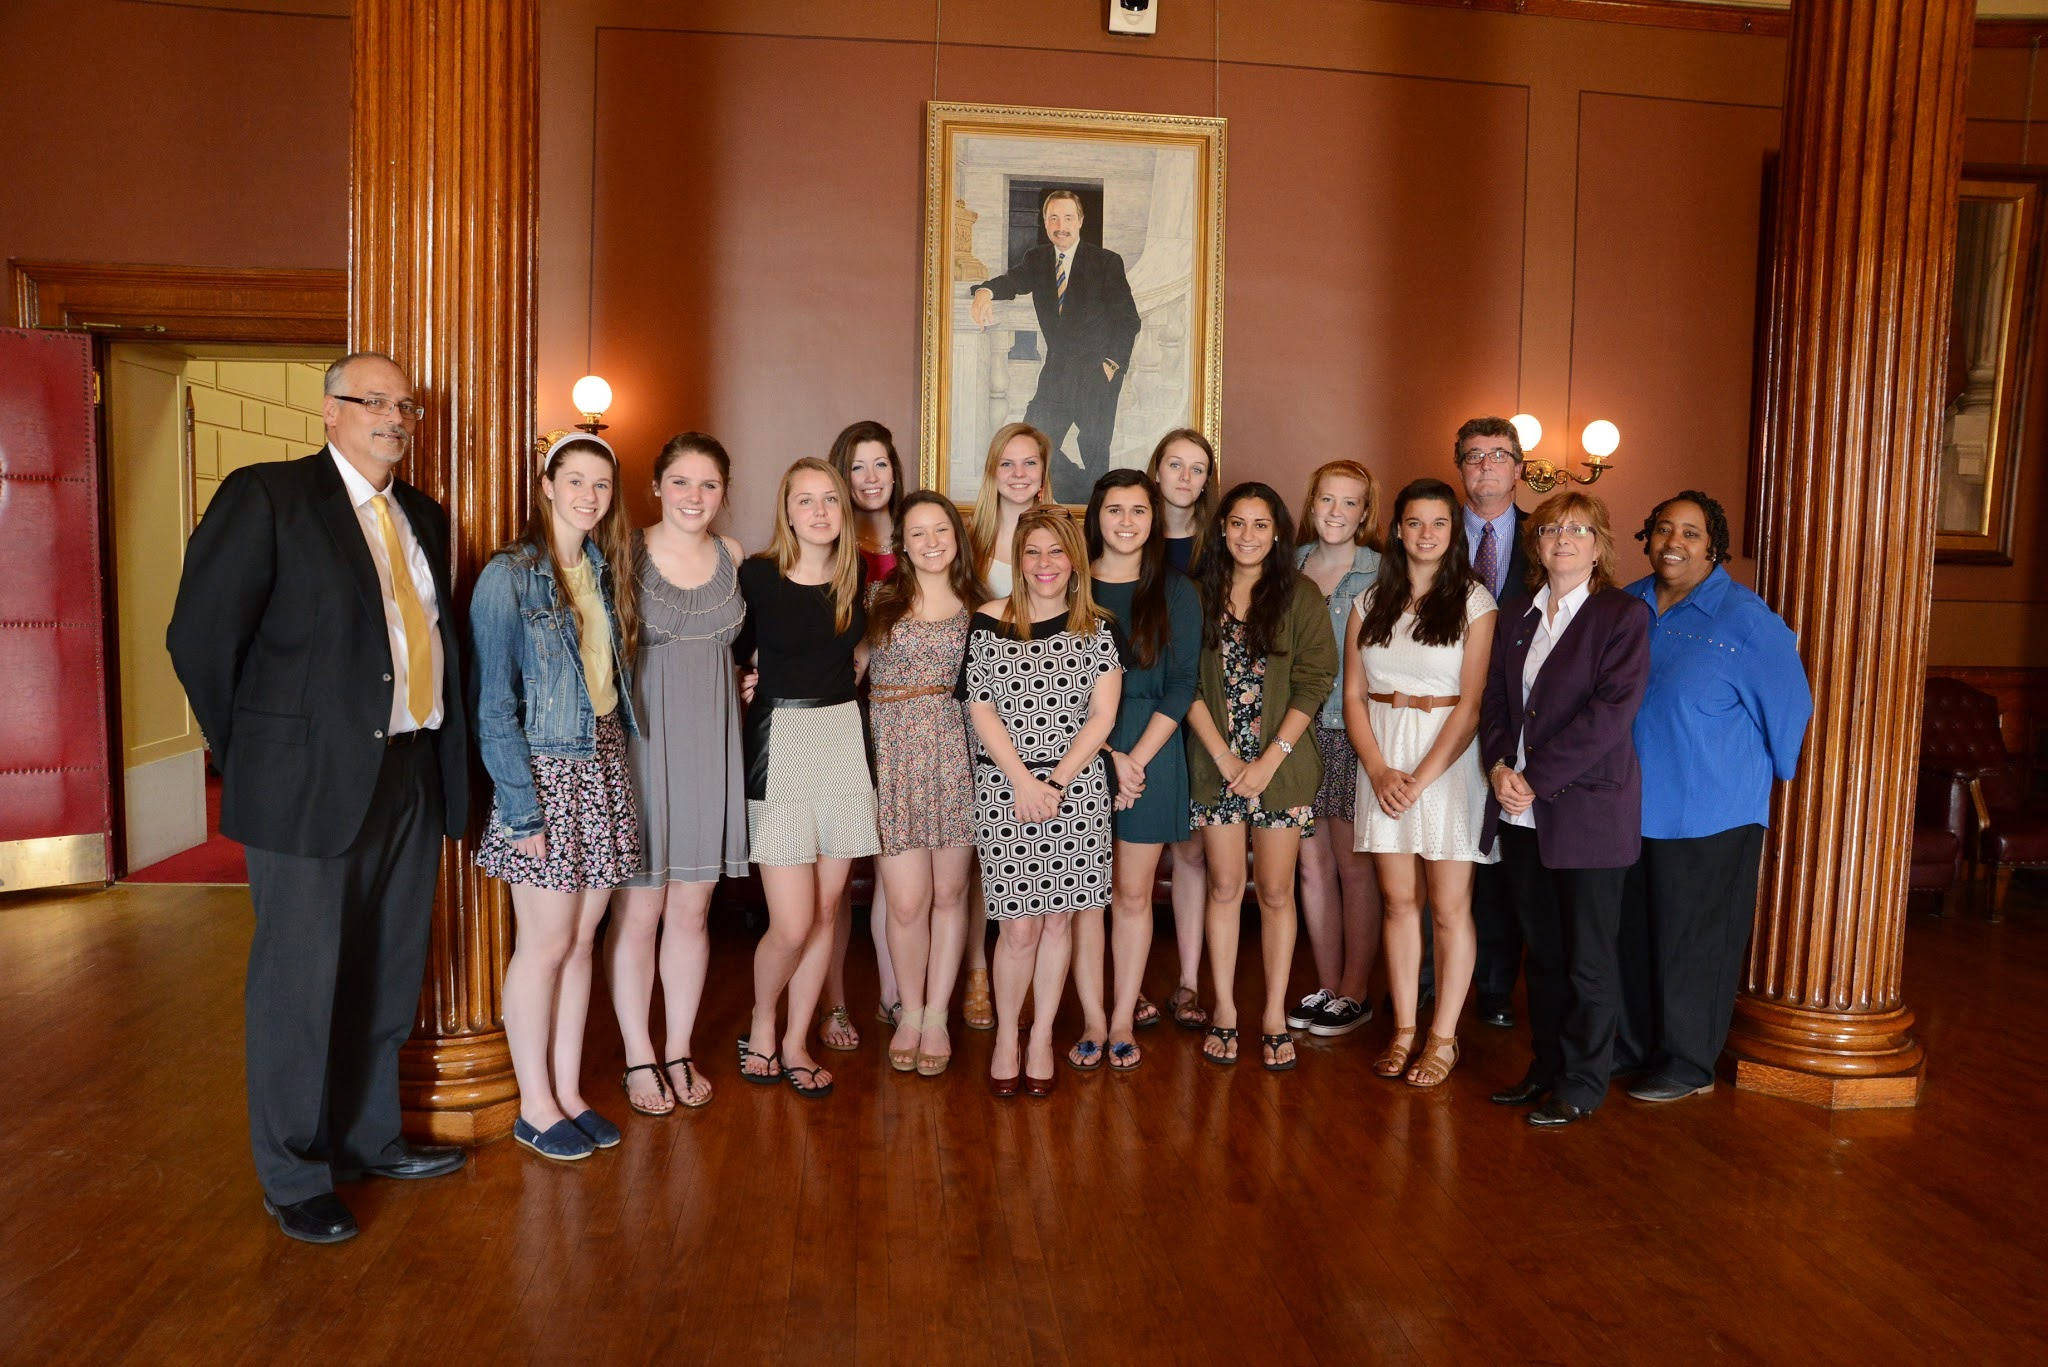 Photo: The North Kingstown High School girls' basketball team was honored by the House of Representatives on May 14, 2014, for winning the state Division I championship.  They were hosted by Reps. Doreen Costa, center; Robert Craven, in the back row at right, and Deb Ruggiero, second from right.